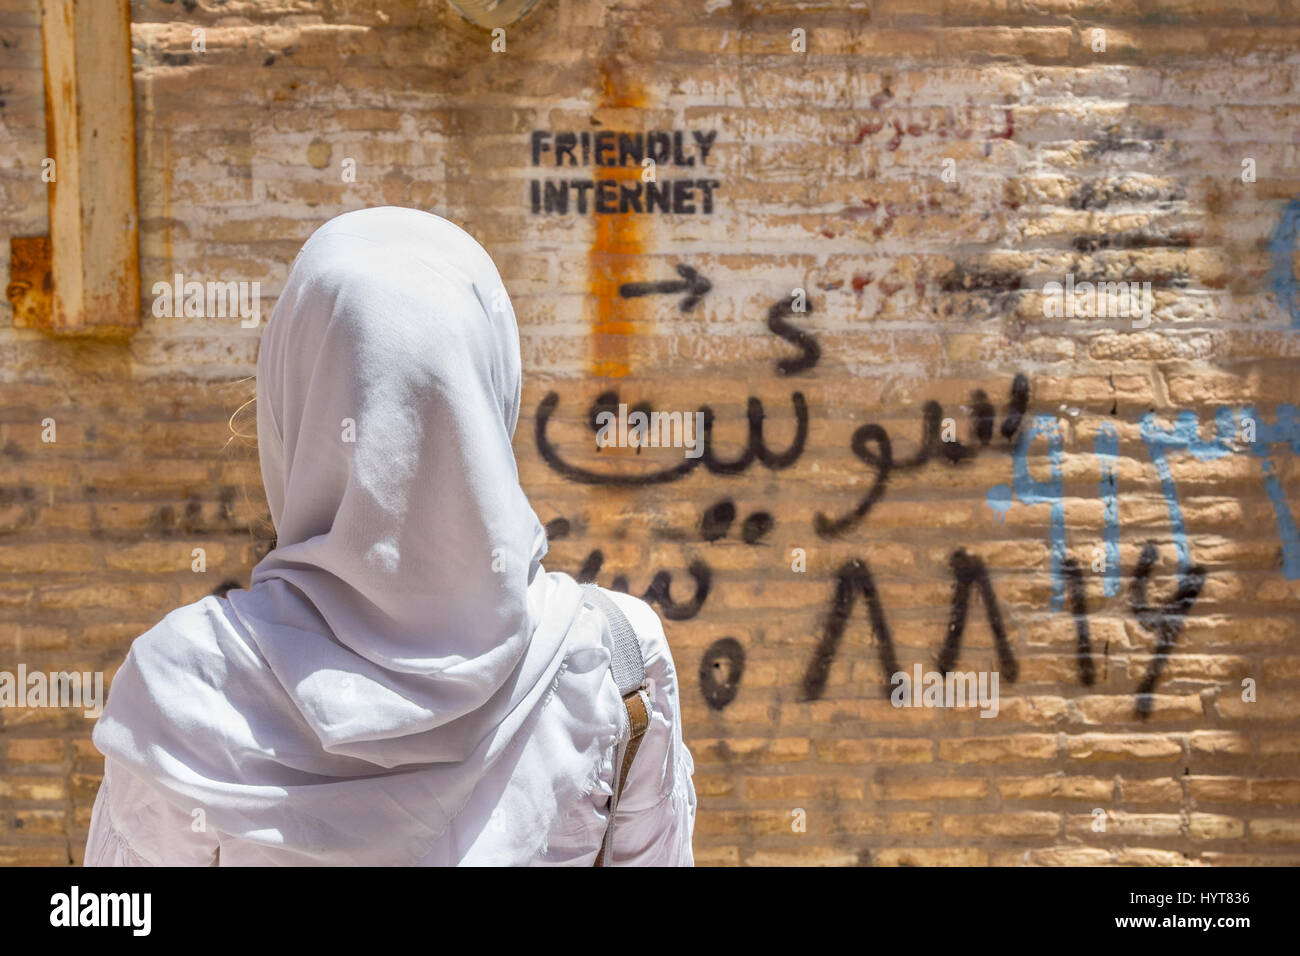 YAZD, IRAN - AUGUST 18, 2016: Veiled woman looking at an inscription on the wall indicating uncensored Internet - Stock Image